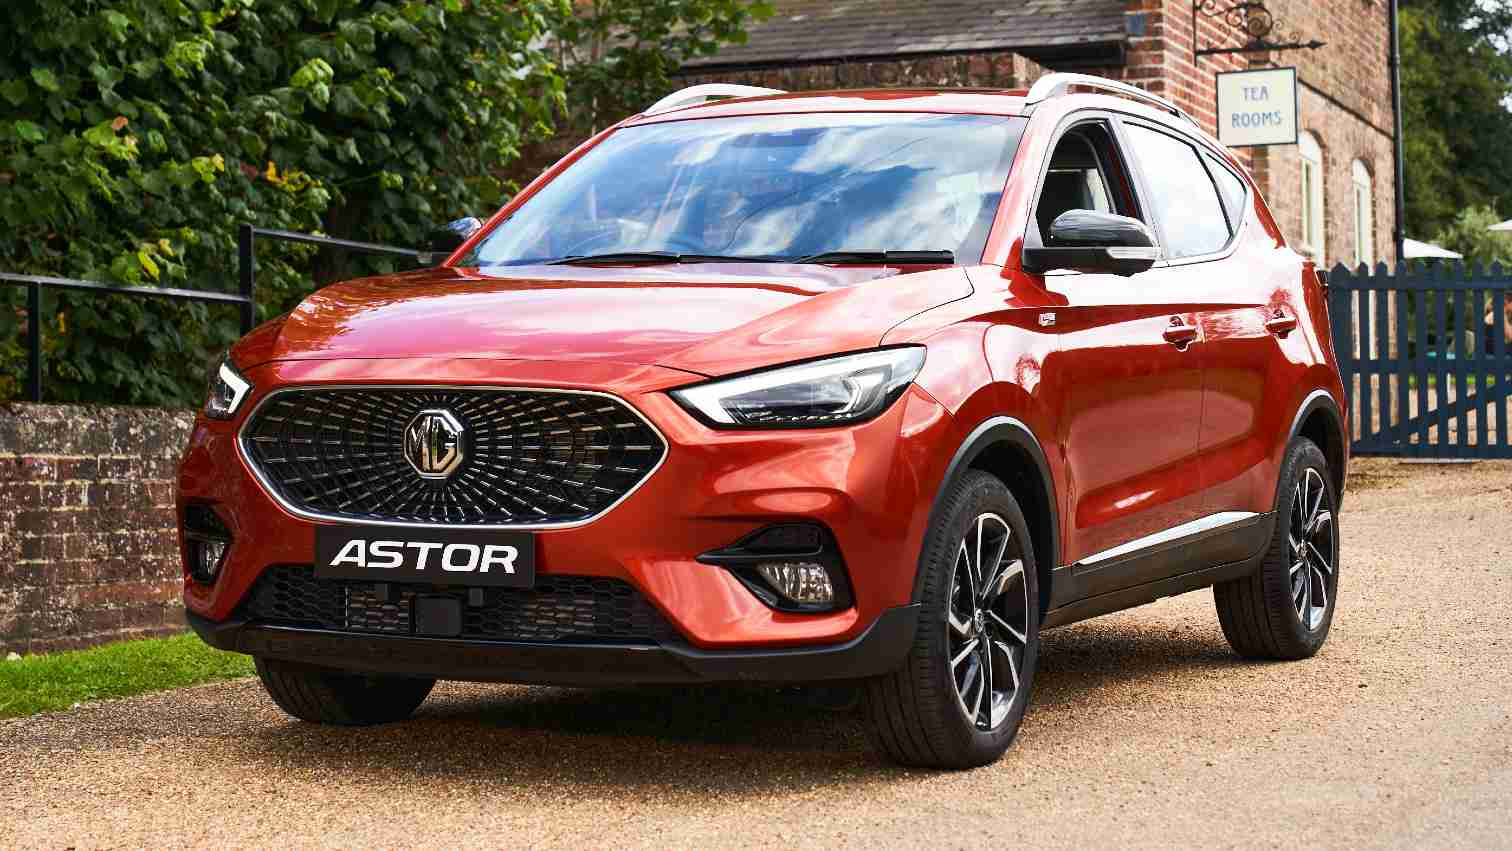 MG Astor makes India debut: Midsize SUV to be offered with two petrol engine options, Level 2 ADAS- Technology News, Firstpost